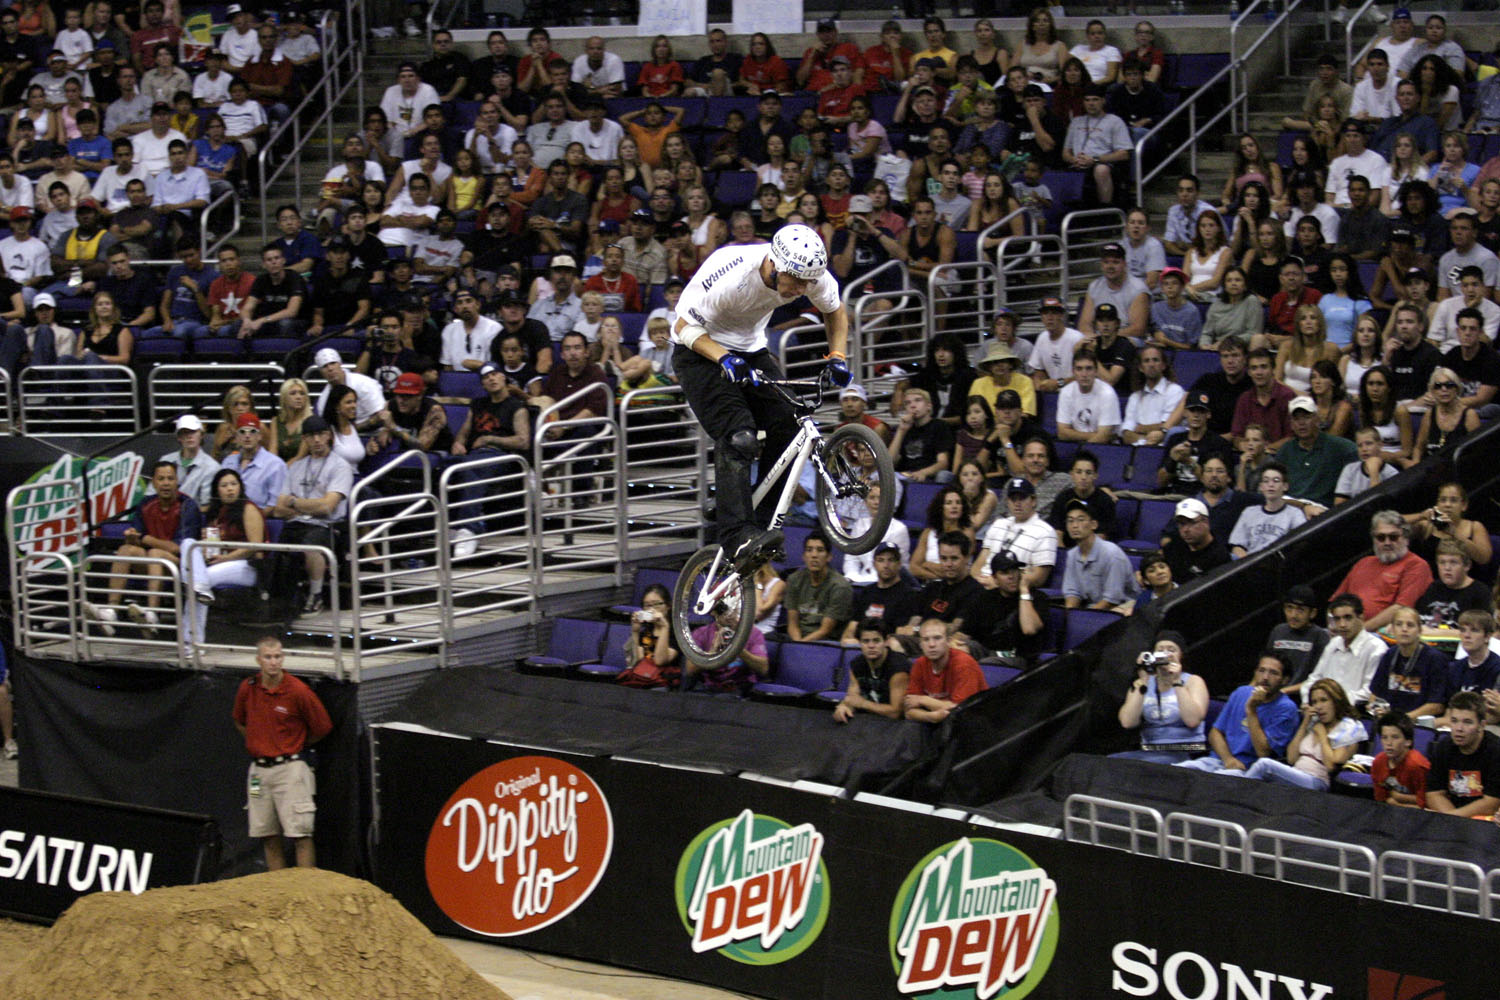 Stephen Murray catches air at the X Games 9 Bike Stunt Dirt contest held at the Staples Center in Los Angeles, California.